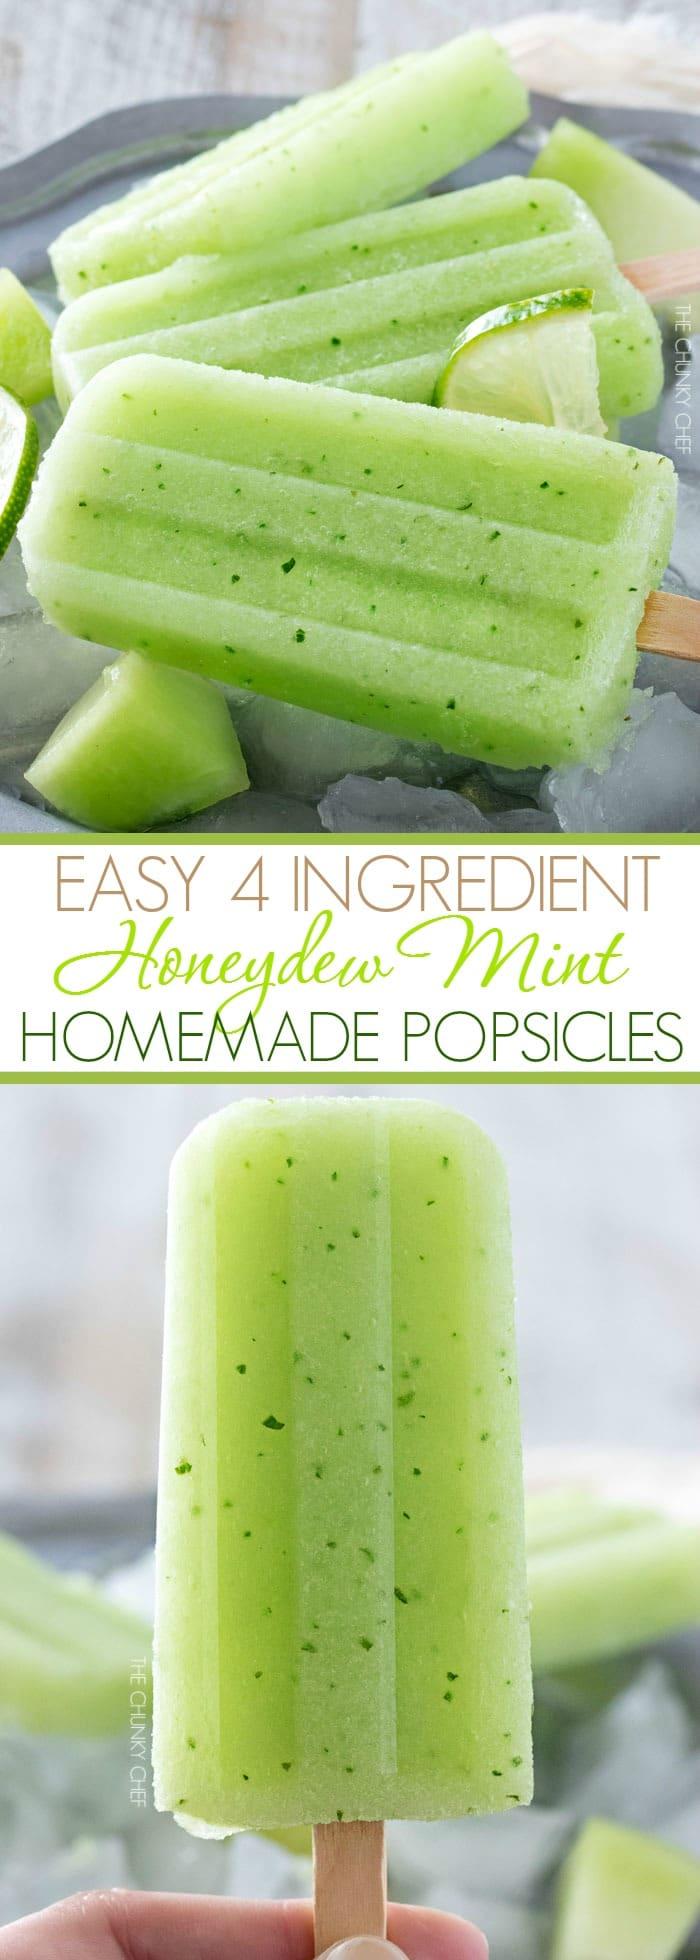 Honeydew Mint Homemade Popsicles | The refreshing taste of sweet honeydew melon and fresh mint will make these easy 4 ingredient homemade popsicles an instant favorite! | http://thechunkychef.com